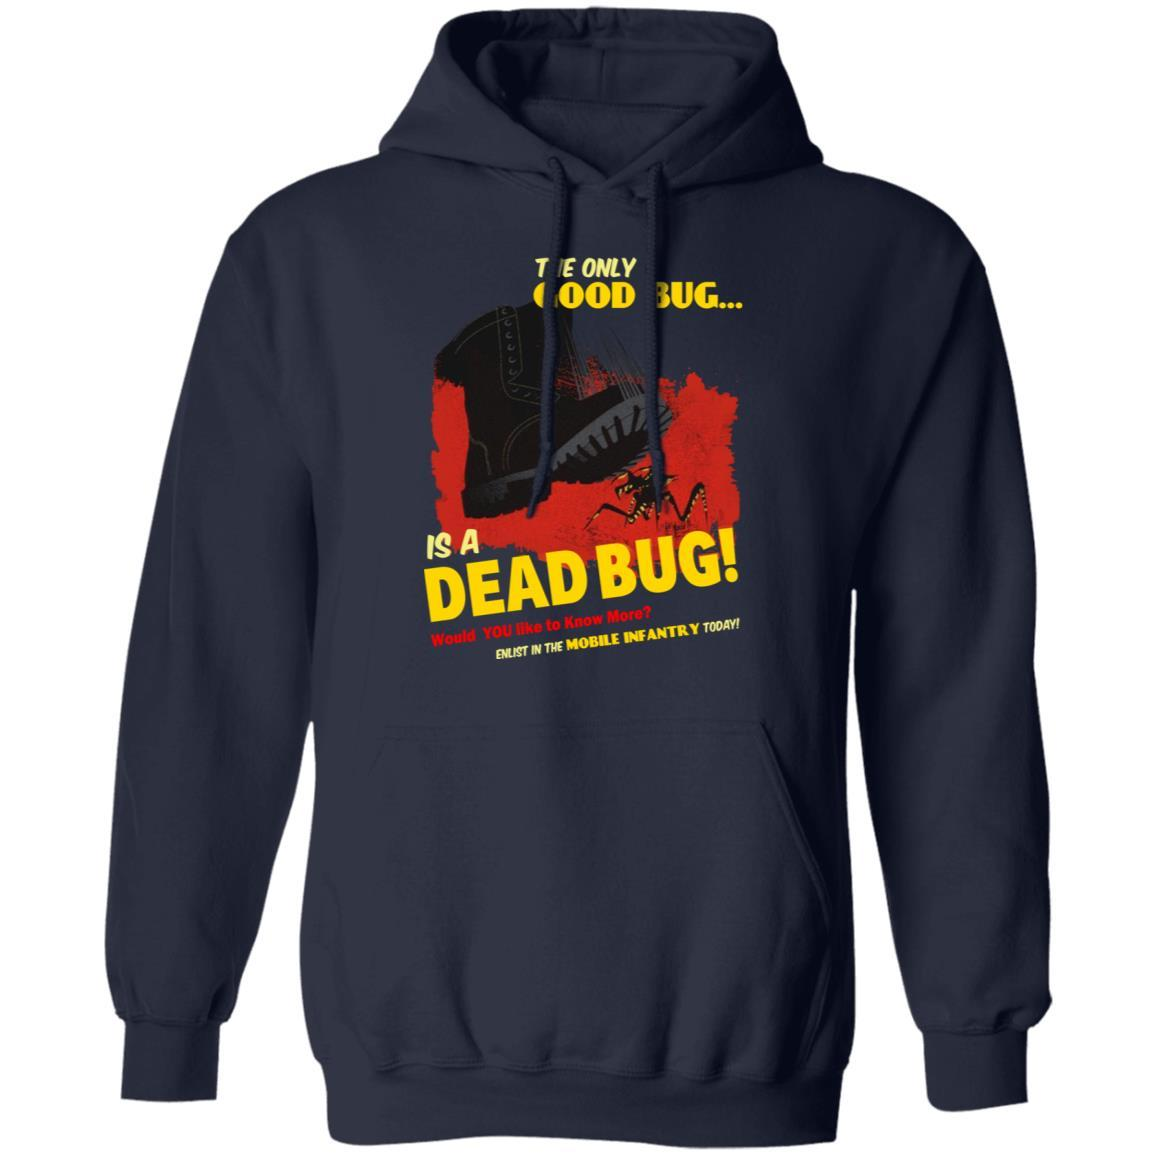 The Only Good Bug Is A Dead Bug Would You Like To Know More Enlist In The Mobile Infantry Today T-Shirts, Hoodies 541-4742-91821632-23135 - Tee Ript